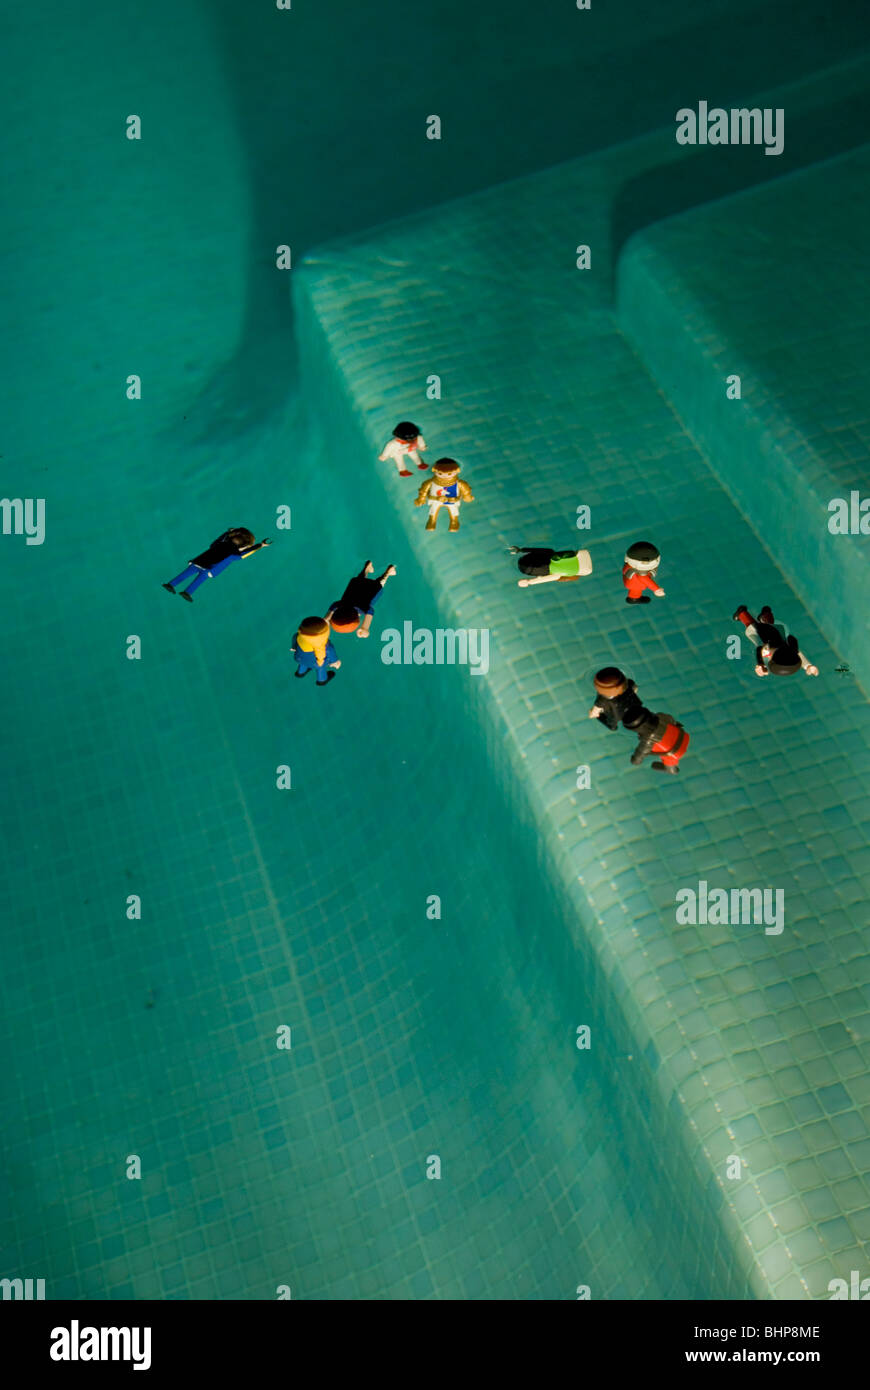 looking down at toy figures lit up floating in swimming pool at night Stock Photo